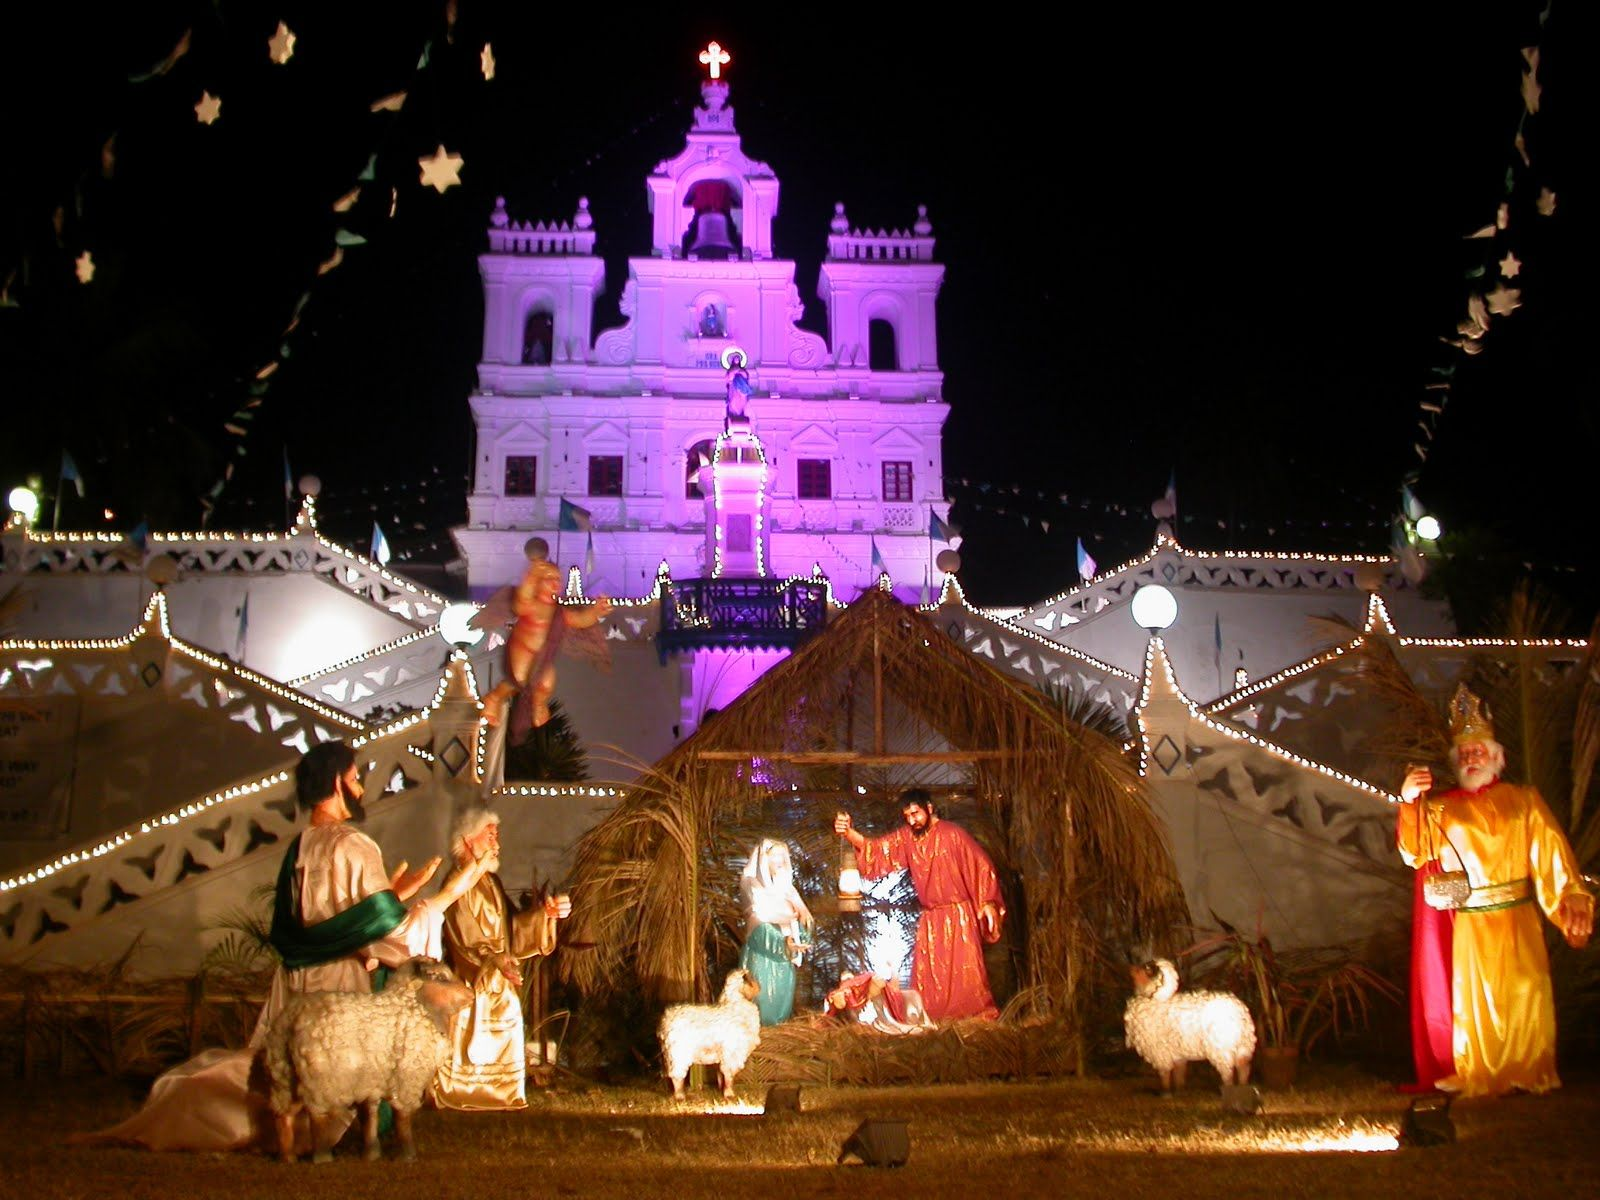 goa a well known place to celebrate christmas in india - Do They Celebrate Christmas In India